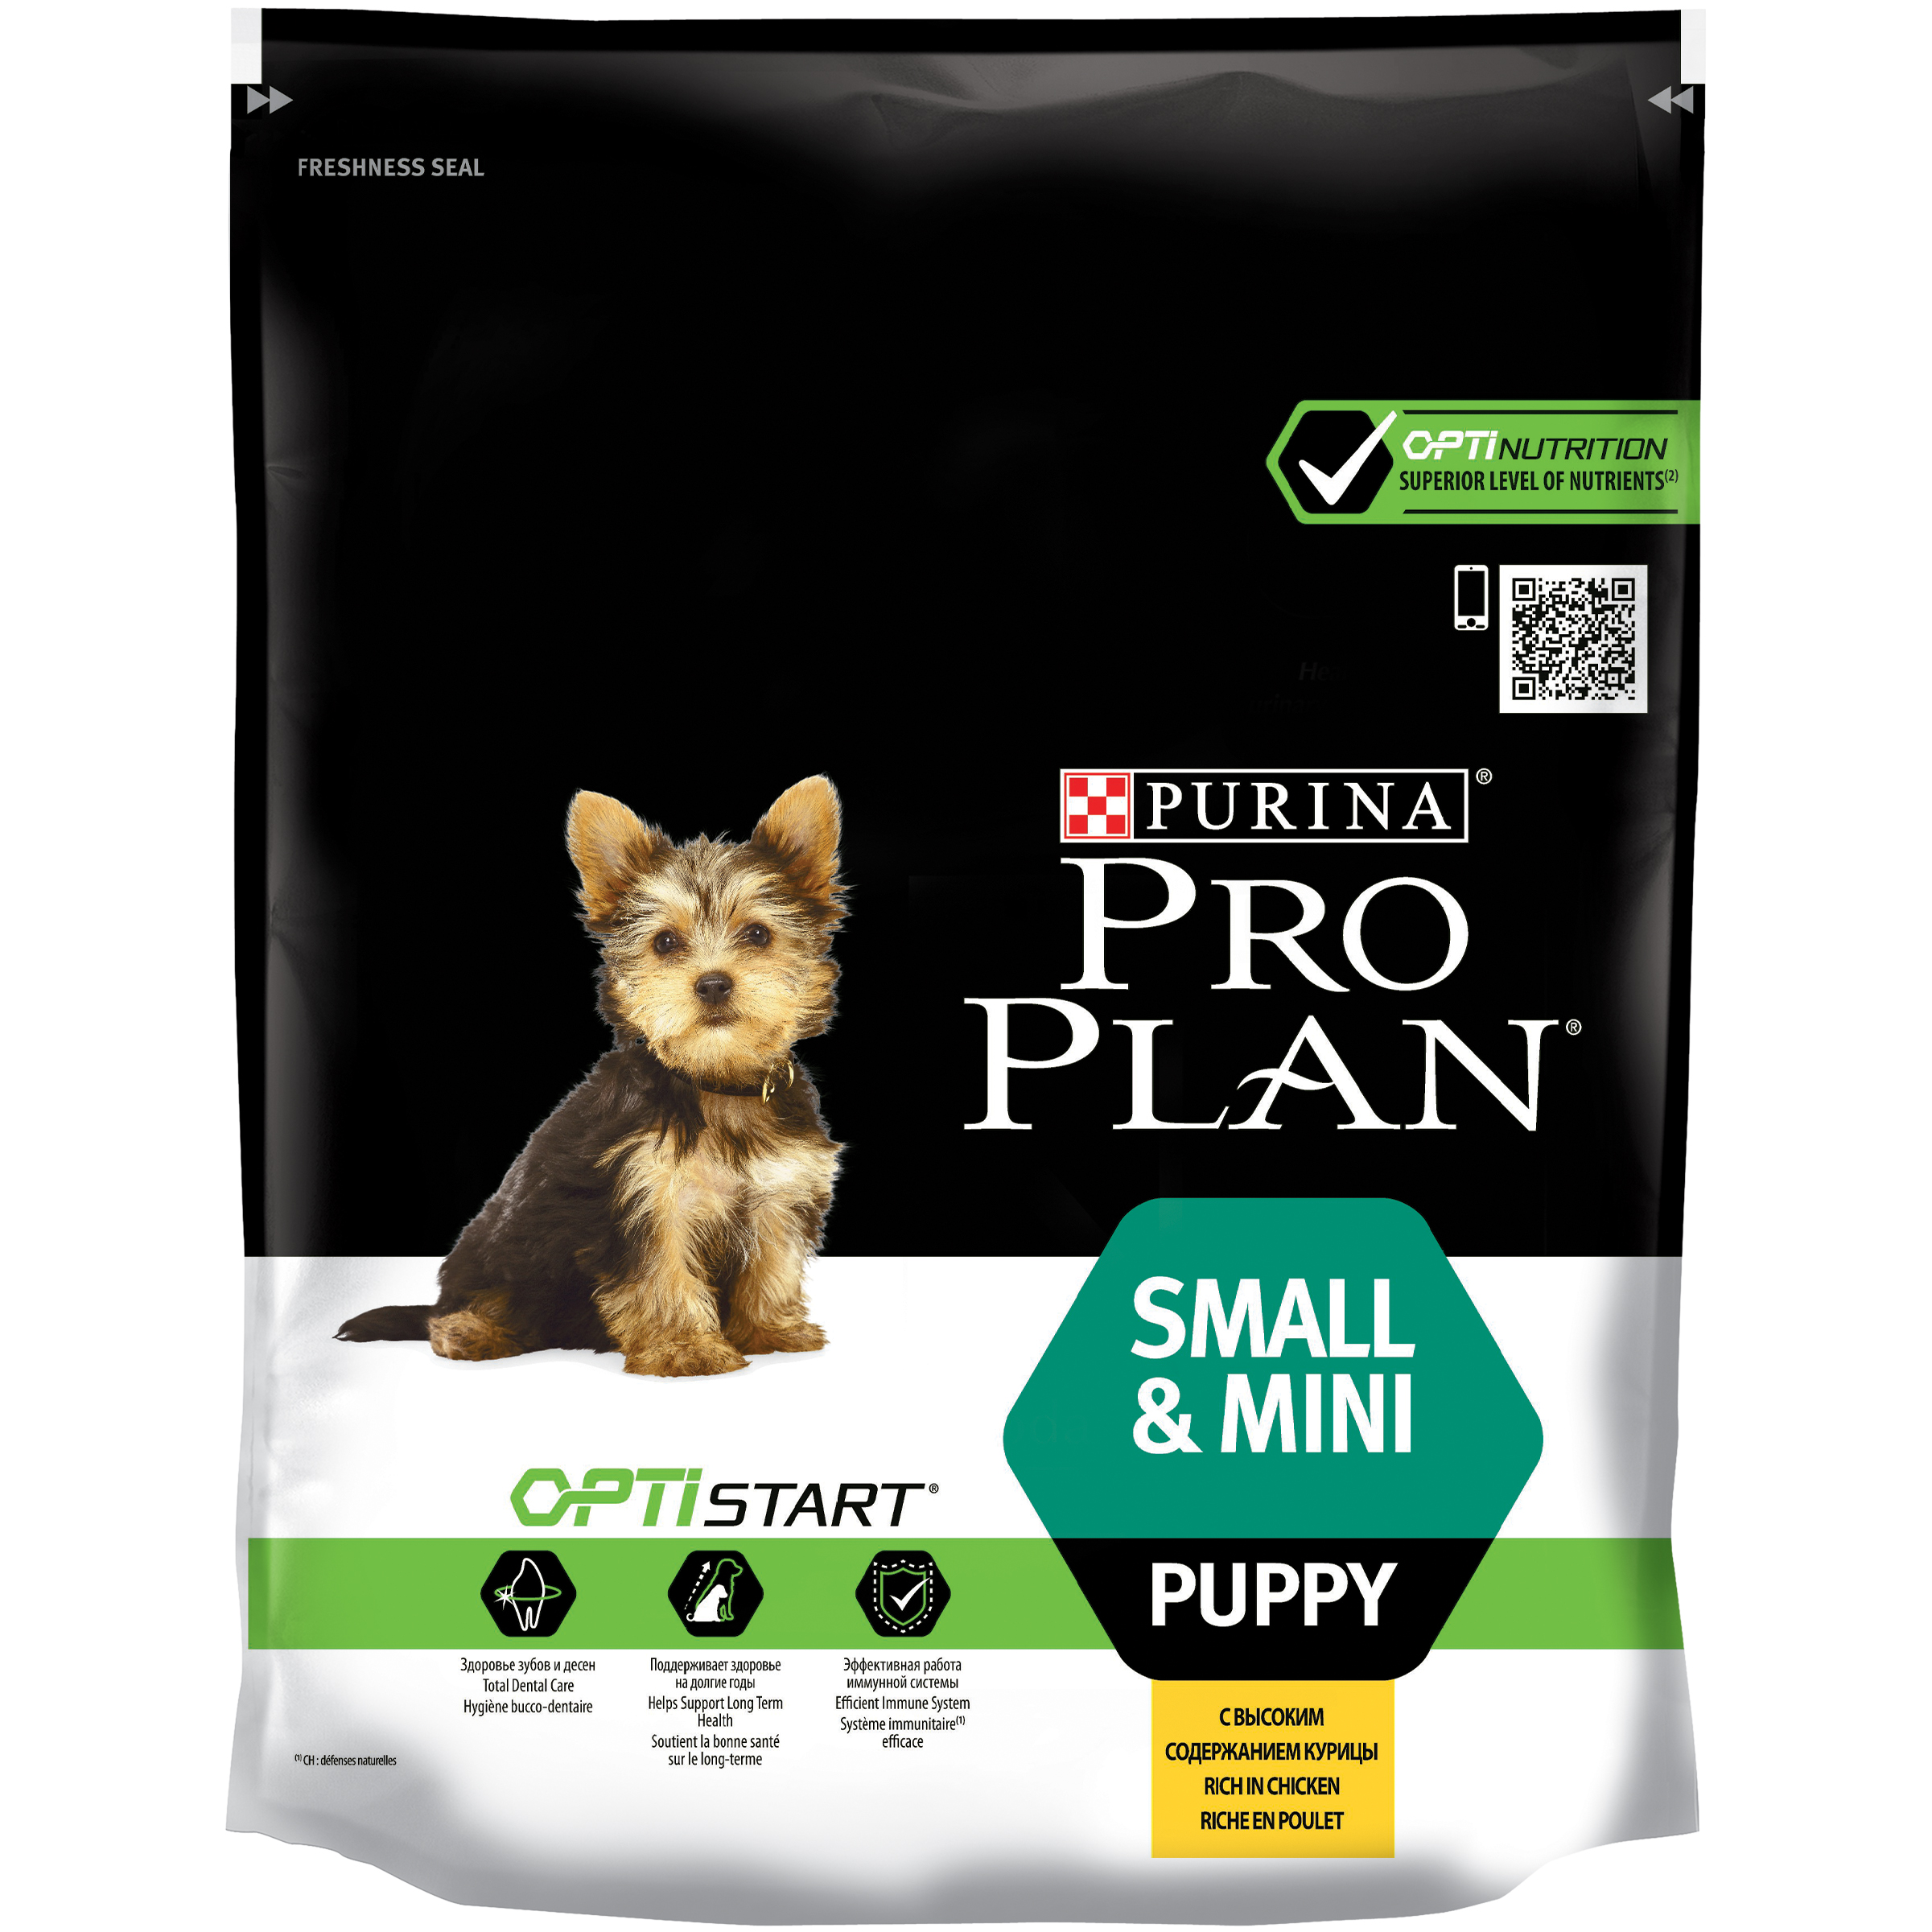 Pro Plan dry food for small / dwarf puppies with OPTISTART complex, chicken and rice, 700 g dwarf master gunnery 28mm